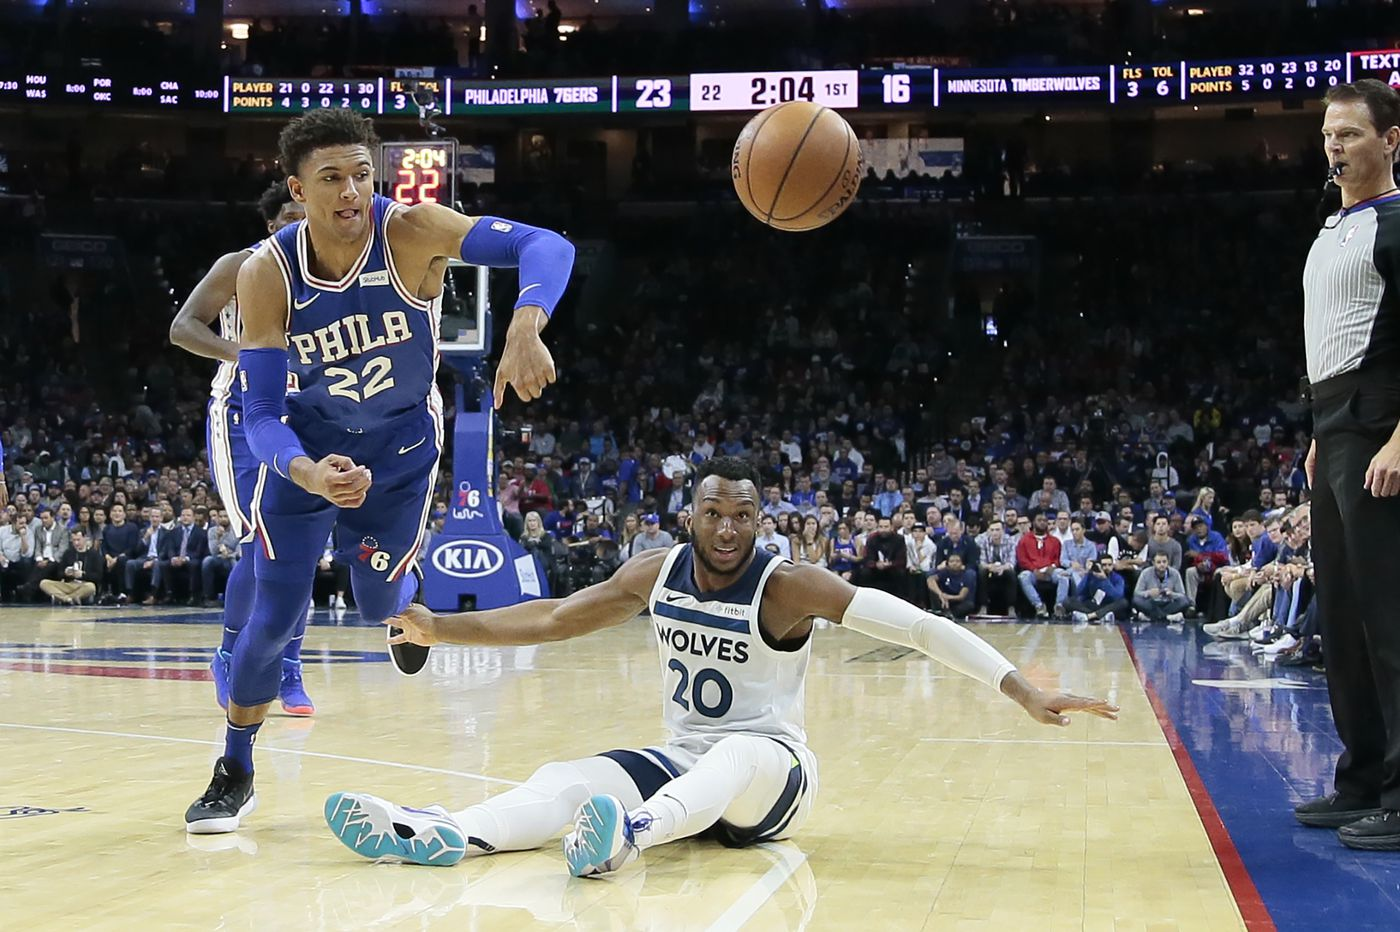 Sixers rookie Matisse Thybulle already recognized as one of NBA's elite defenders